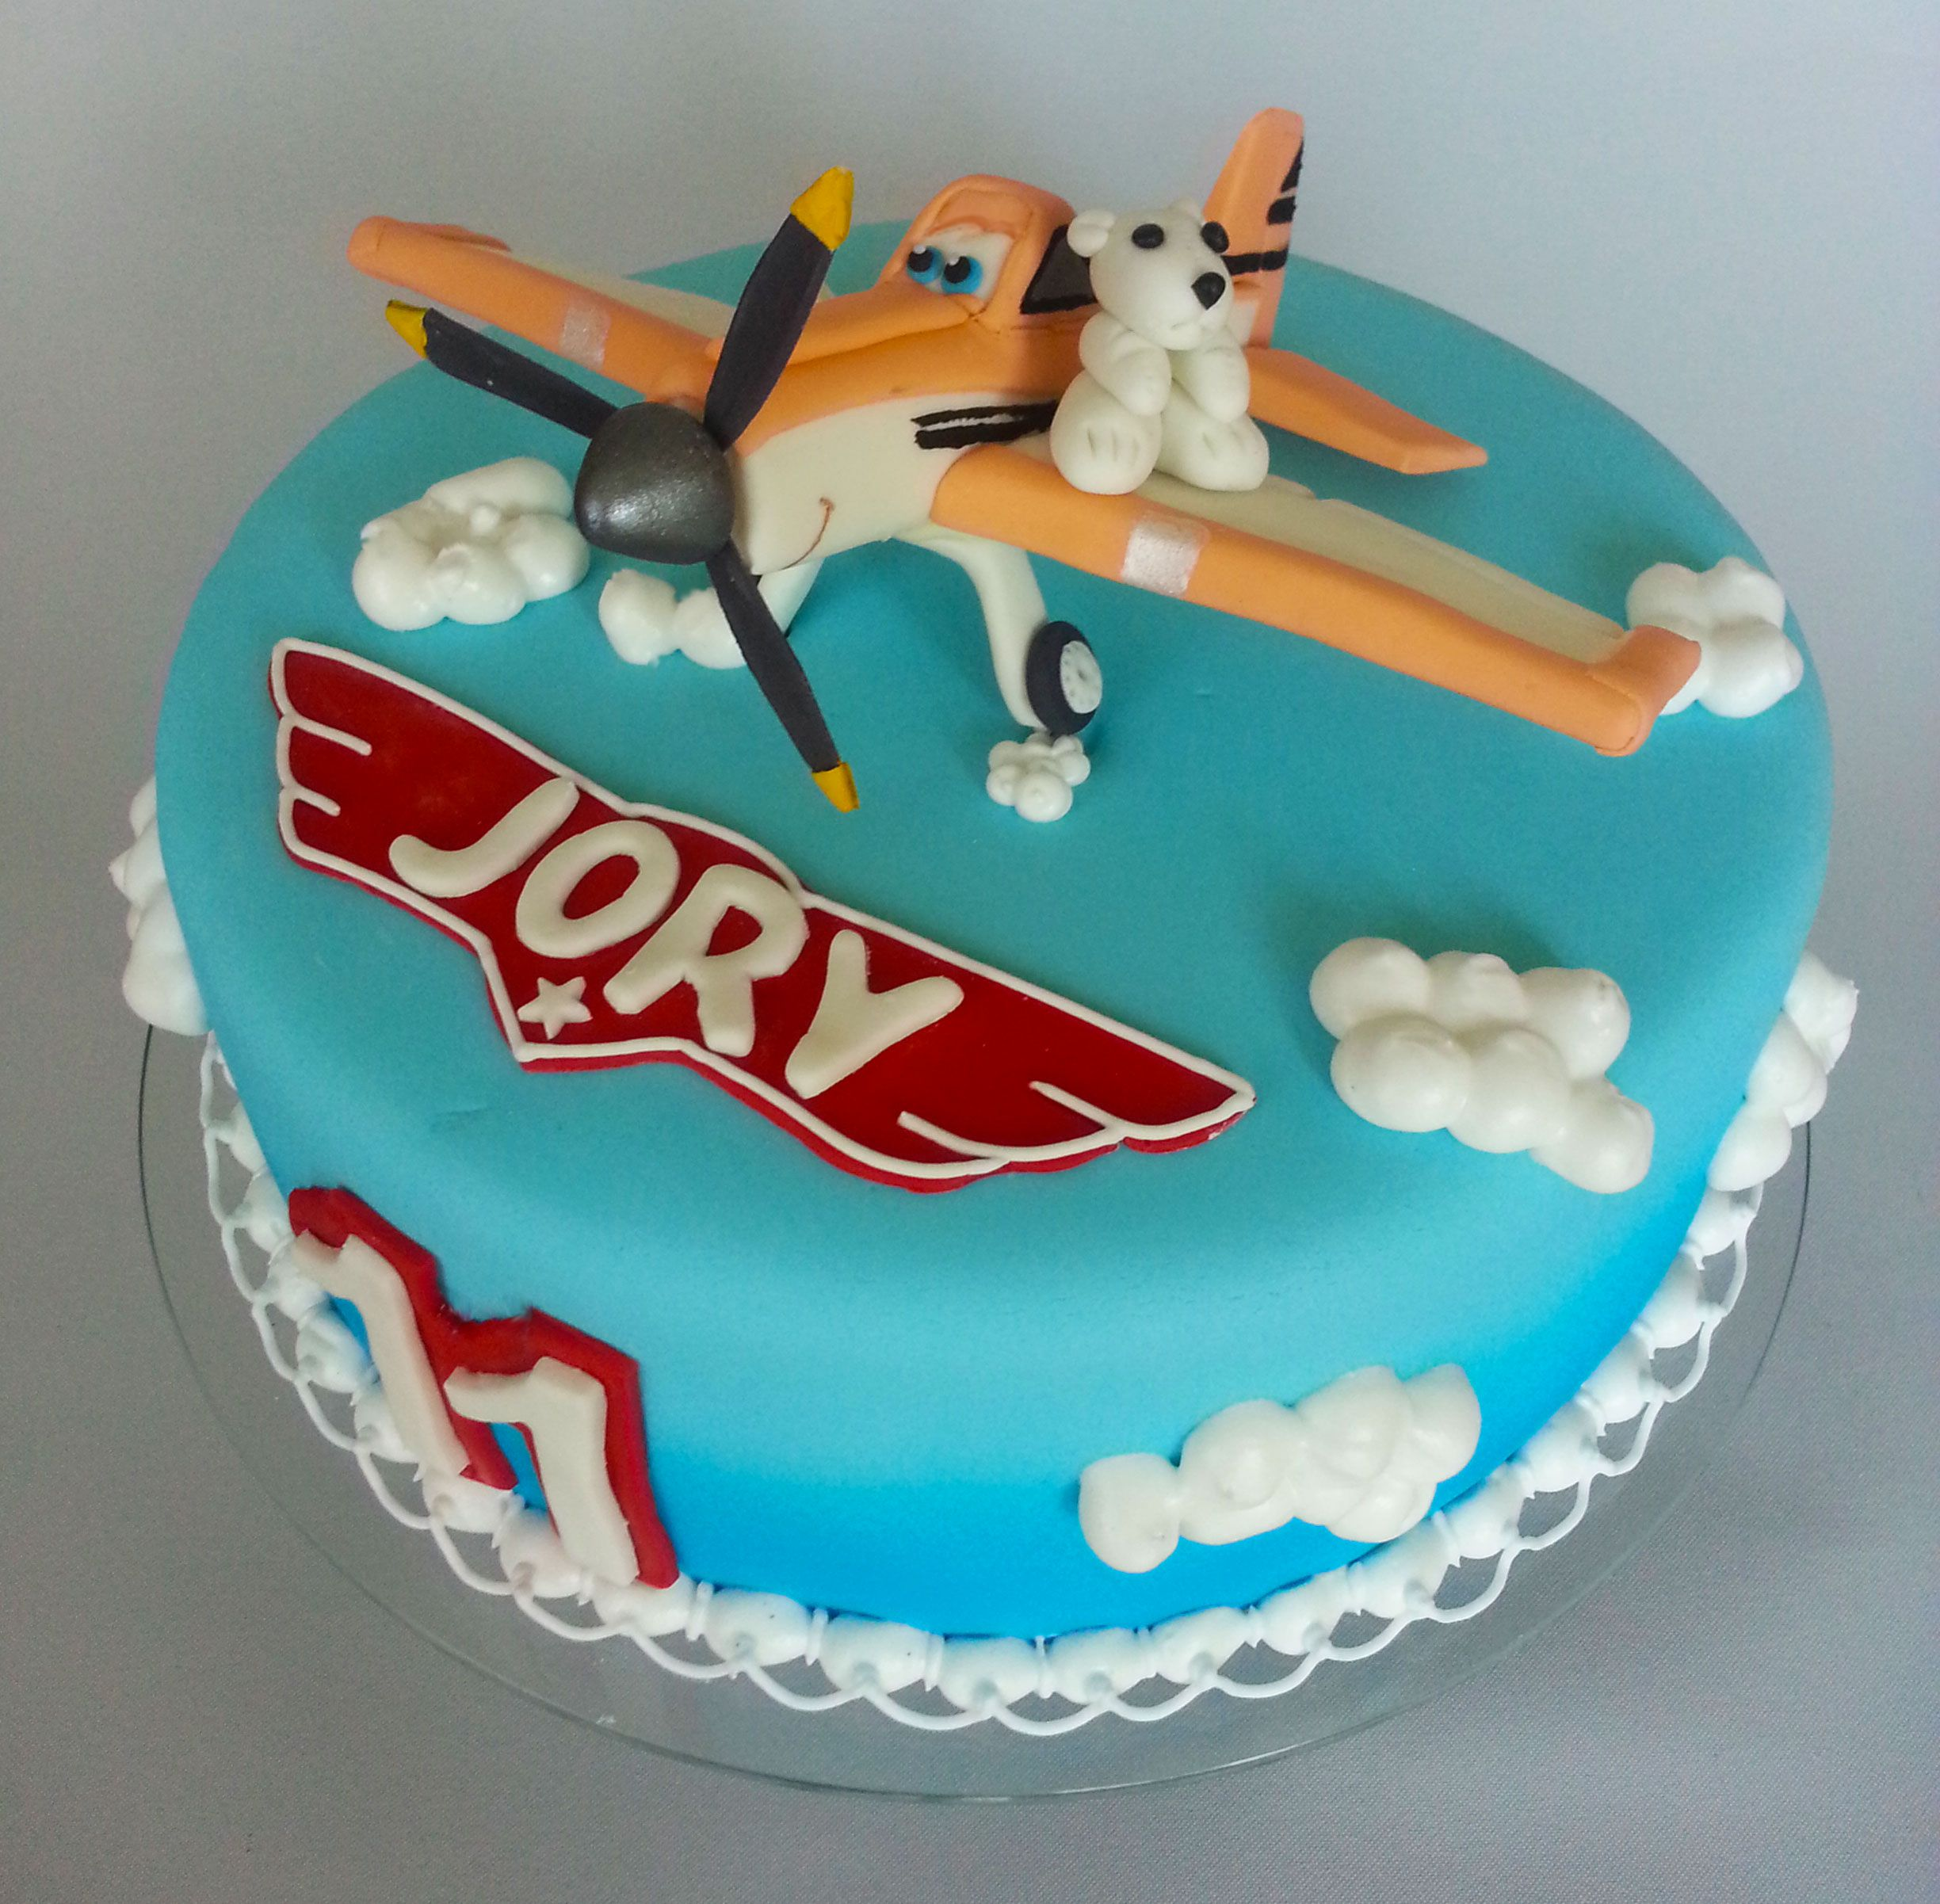 made this cake for my sons birthday last week